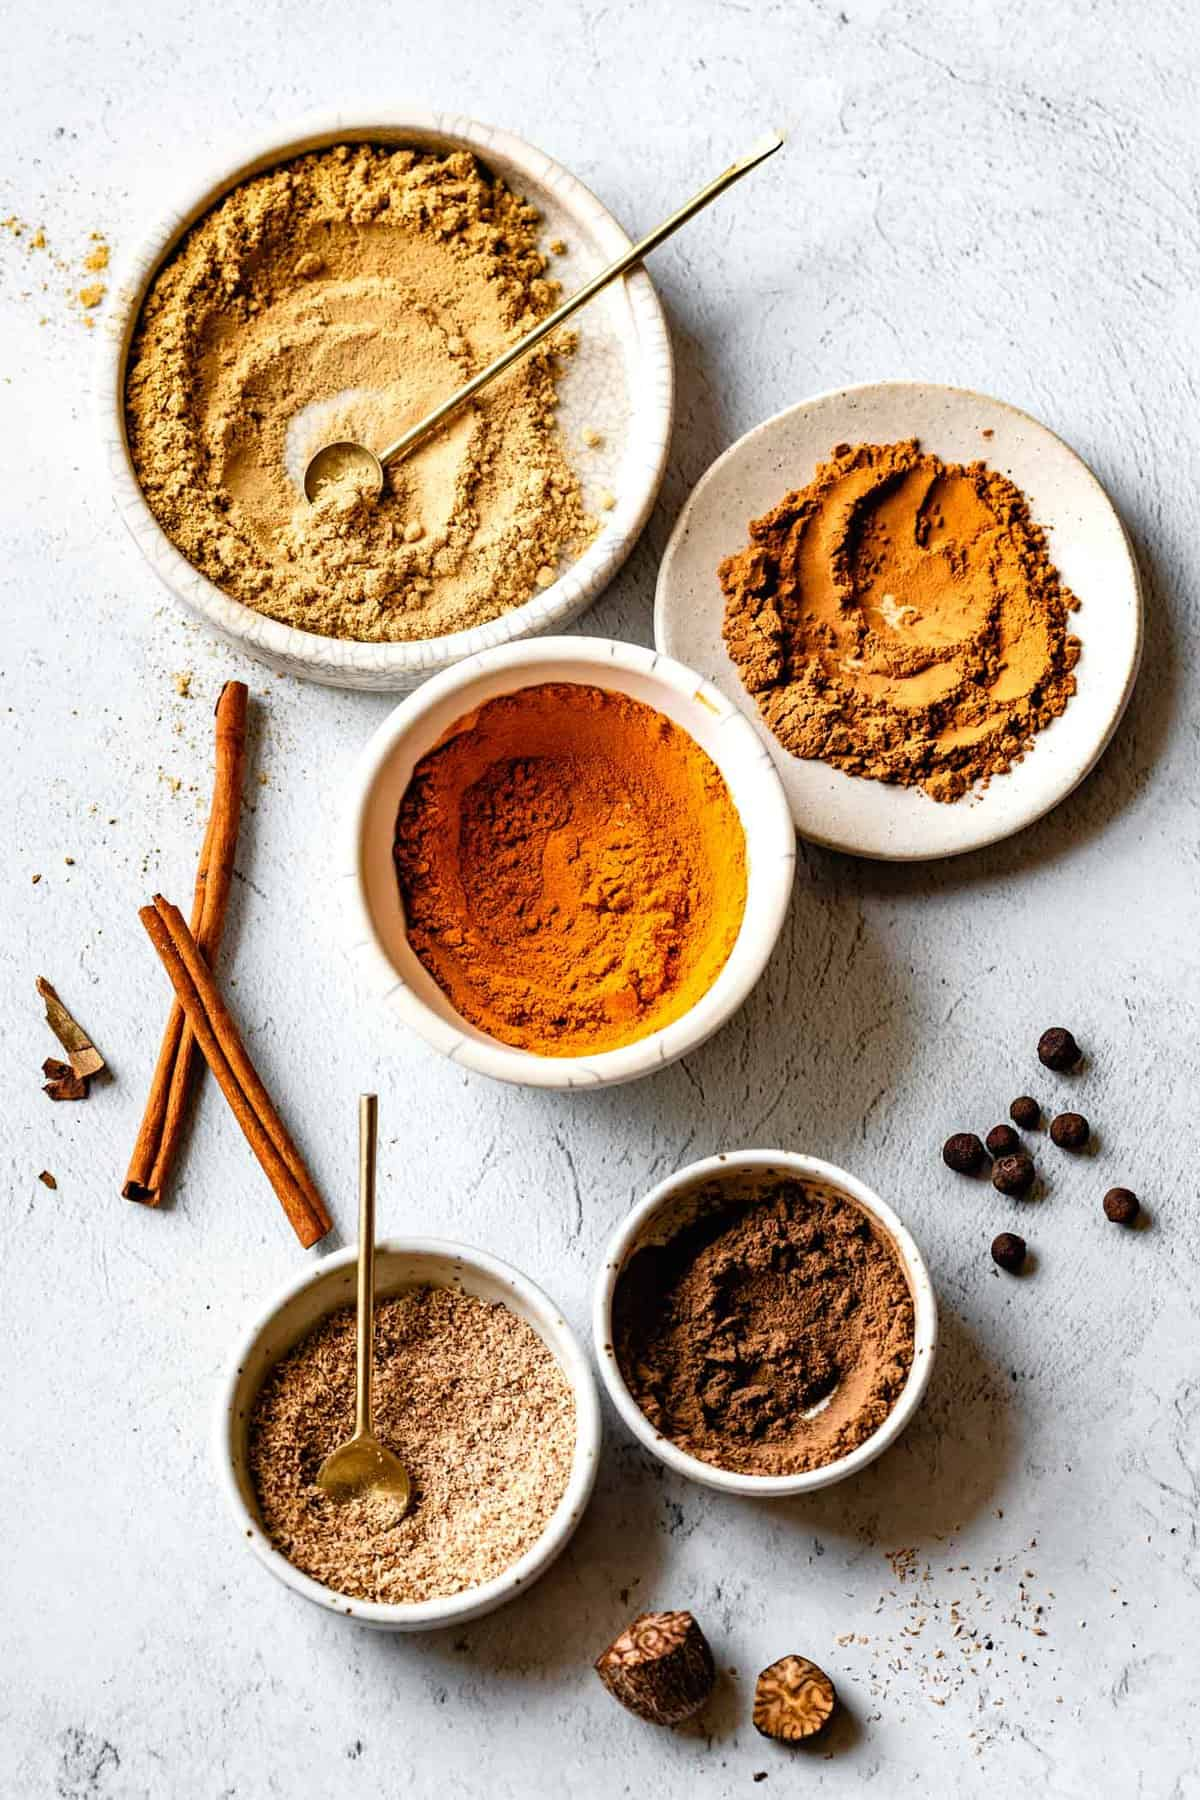 ground spices in small bowls for pumpkin spice seasoning